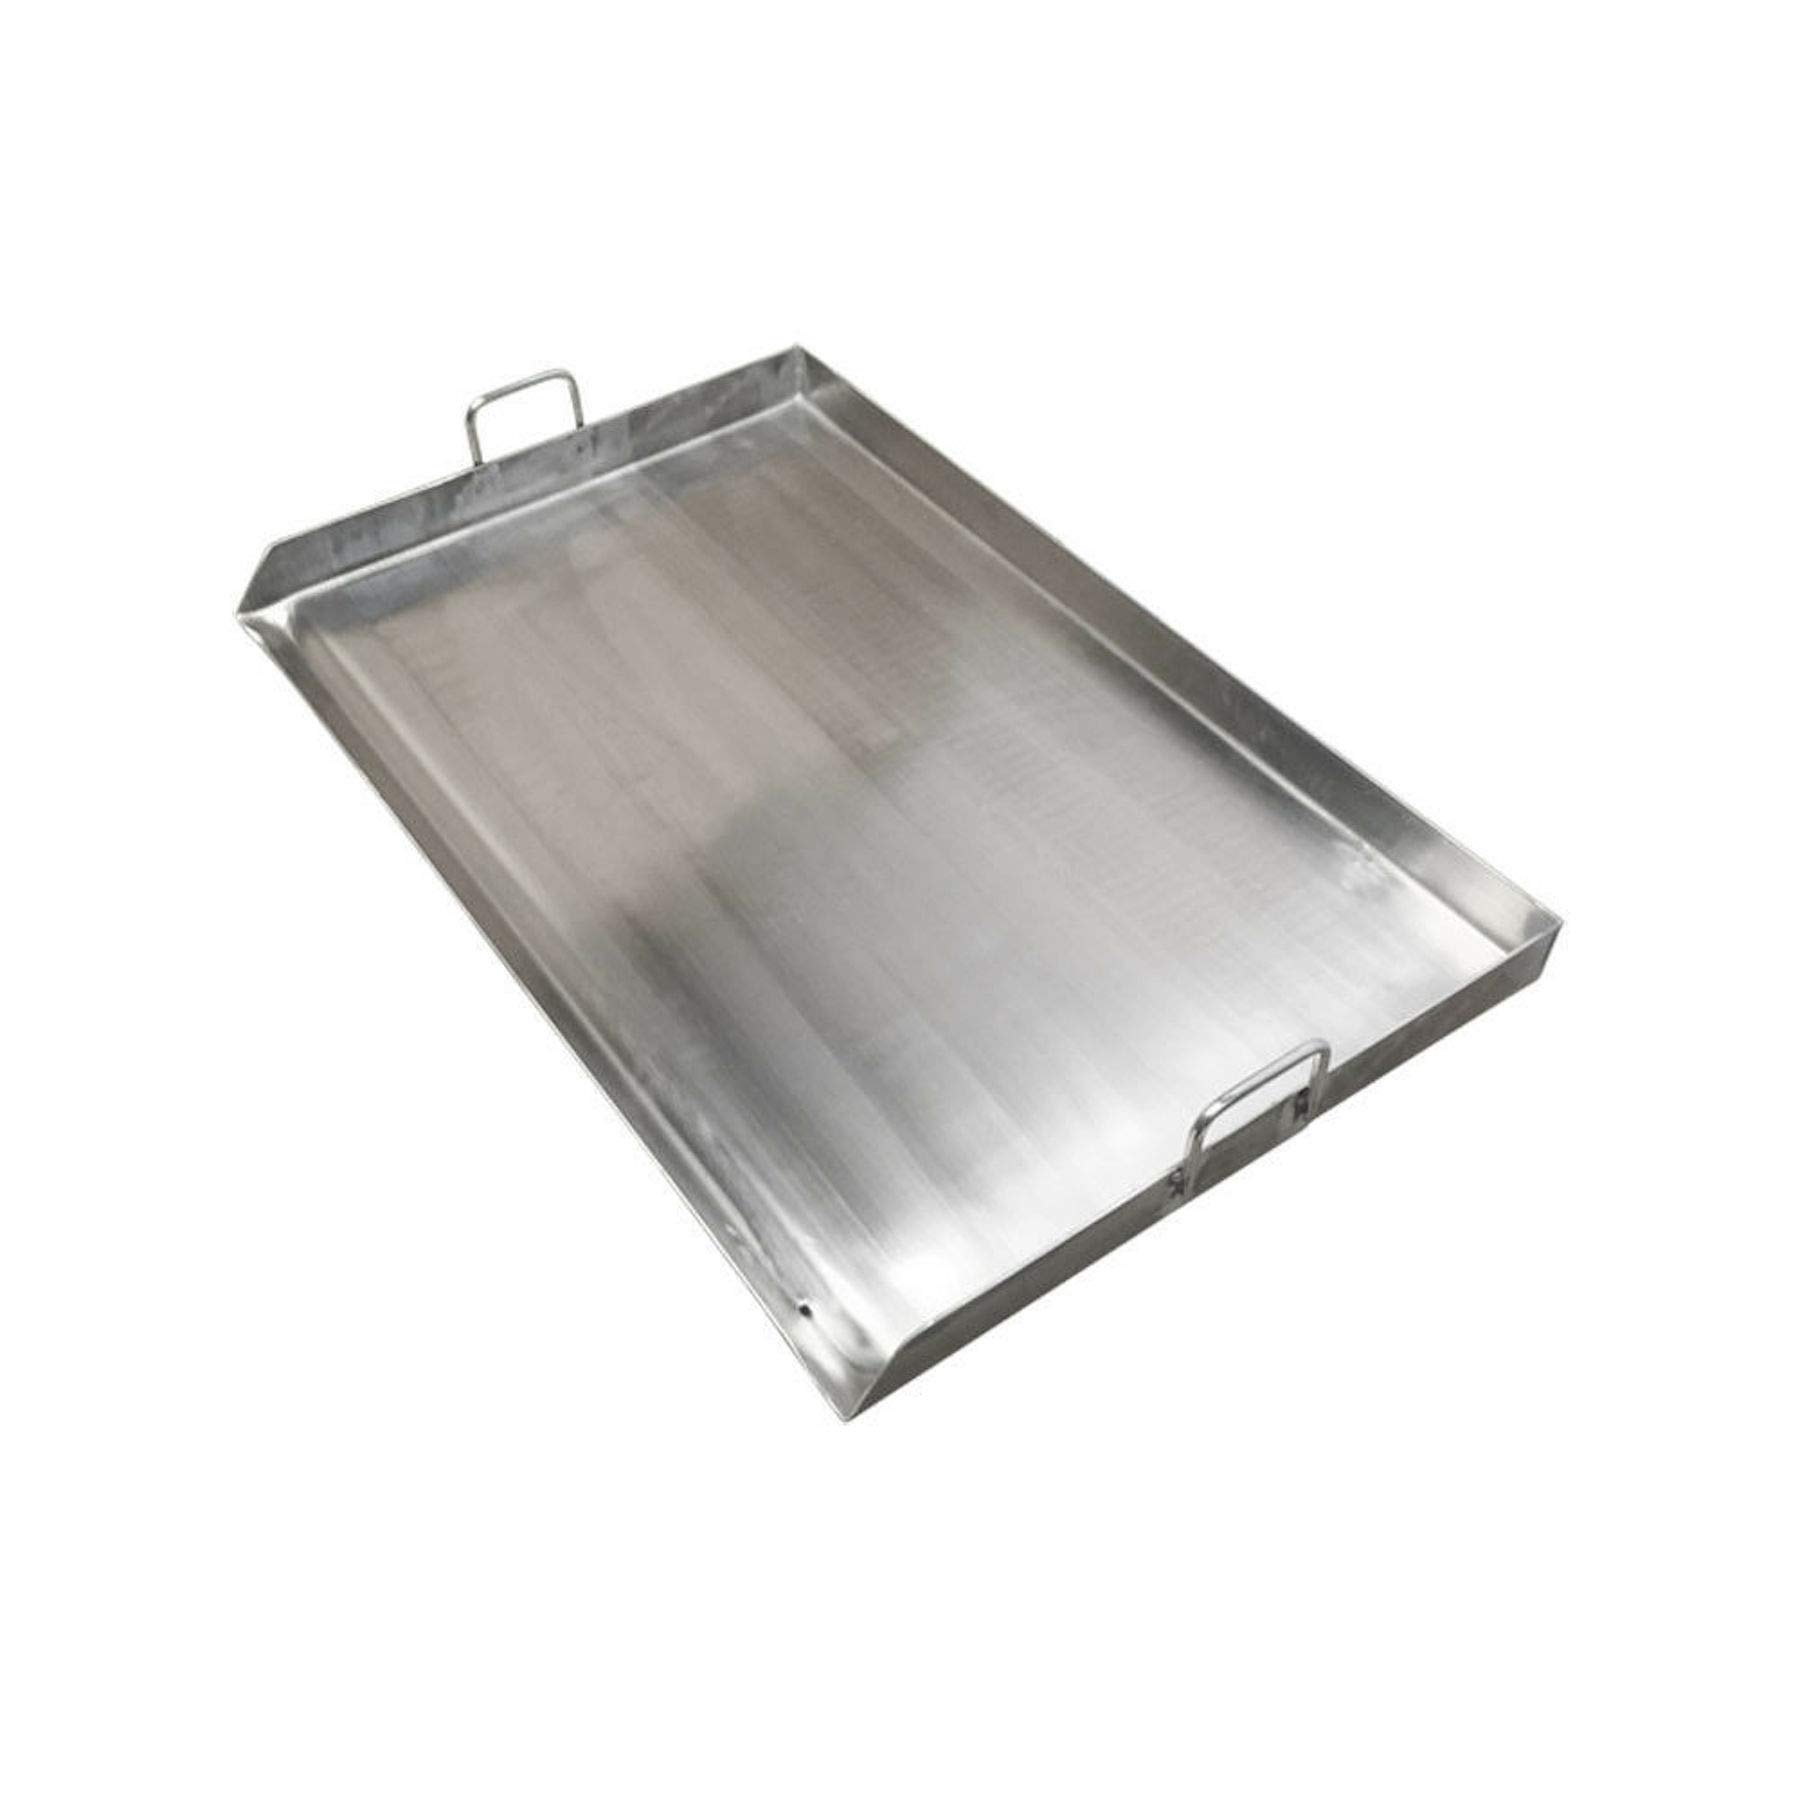 vivaBKK Heavy Duty Stainless Steel Flat Top Griddle Grill Plancha for Double Burner 32 x 17 x 2.5 inches by vivaBKK